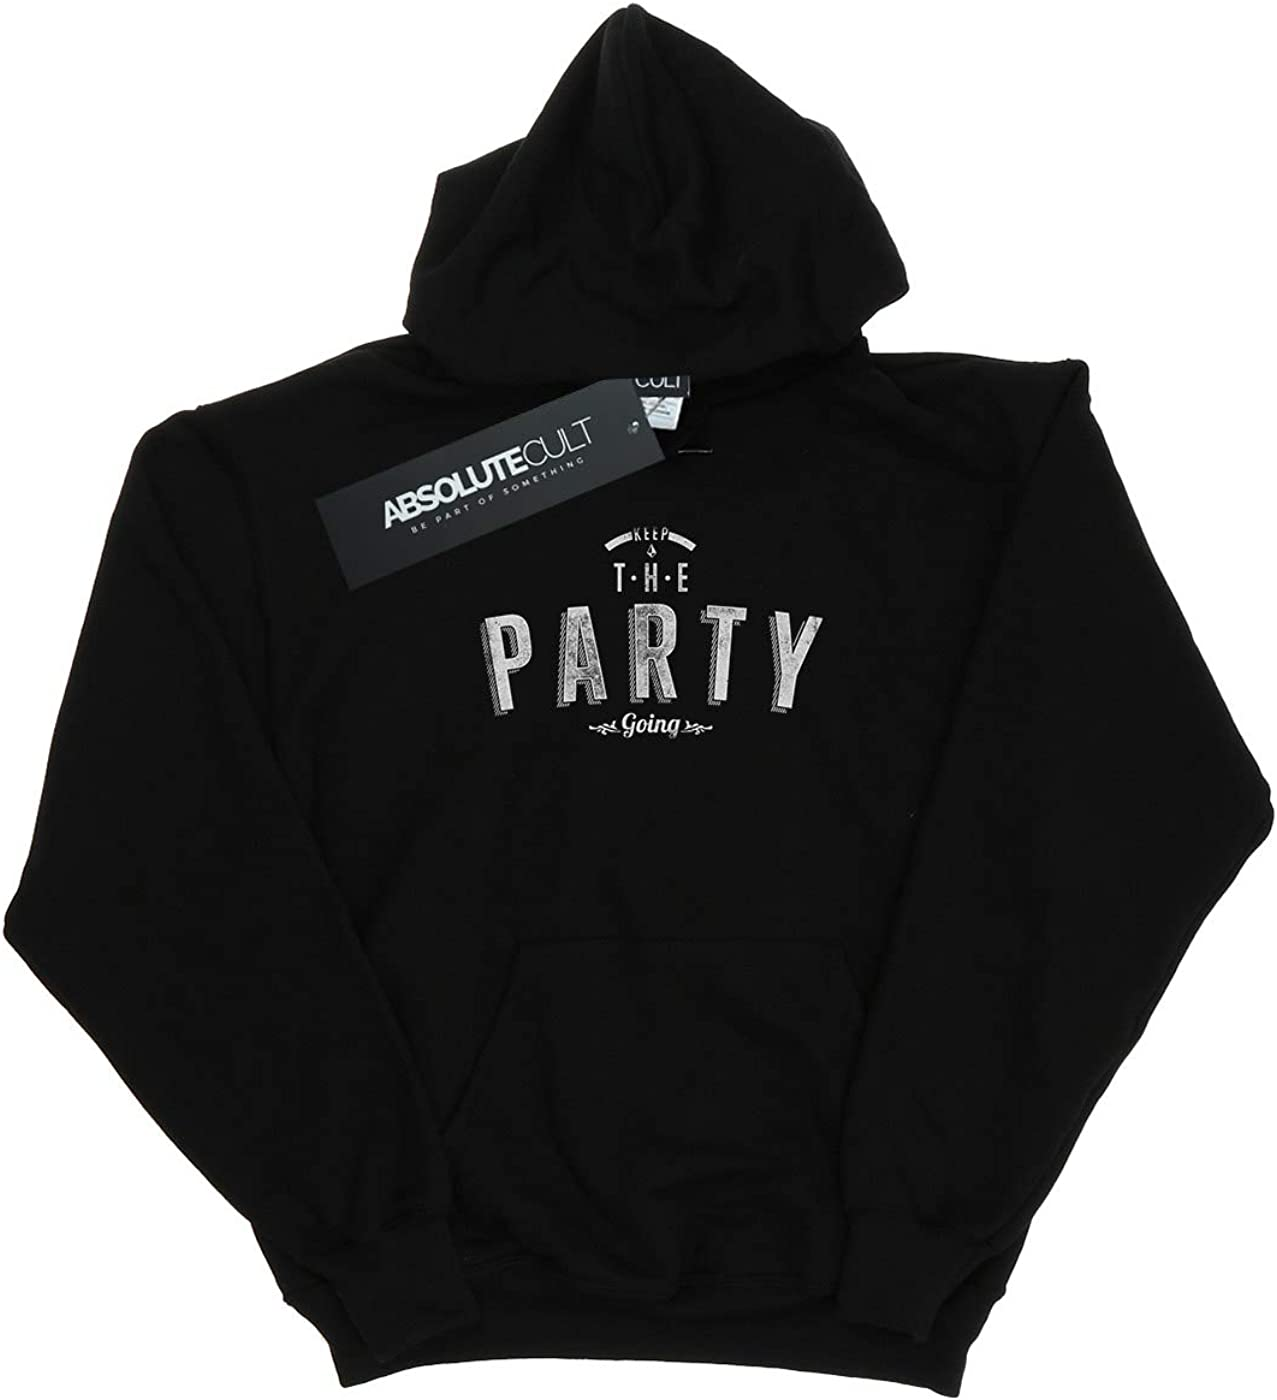 Absolute Cult Drewbacca Girls Keep The Party Going Hoodie